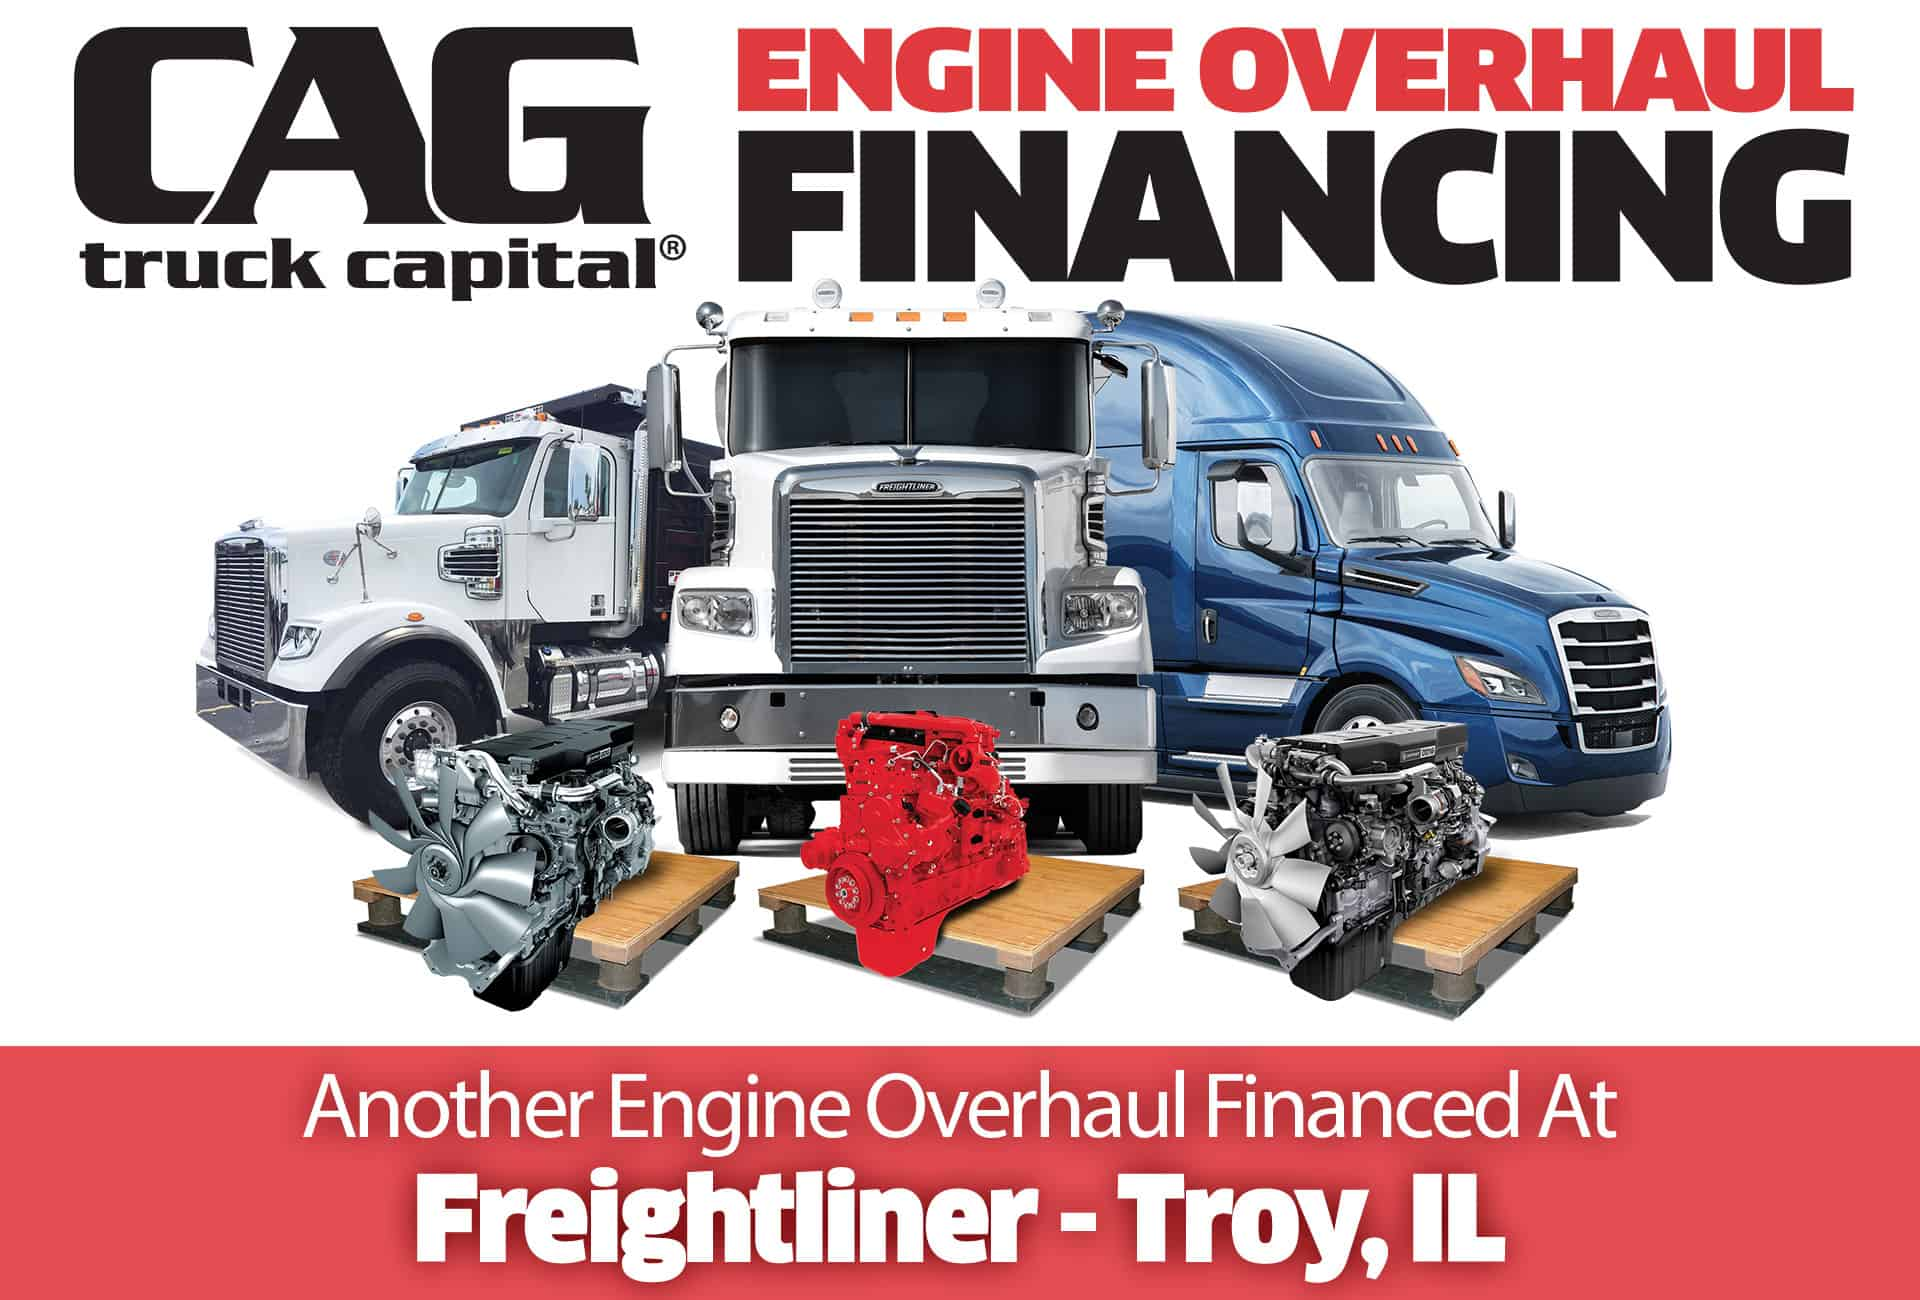 Freightliner Engine Overhauls In Troy, IL